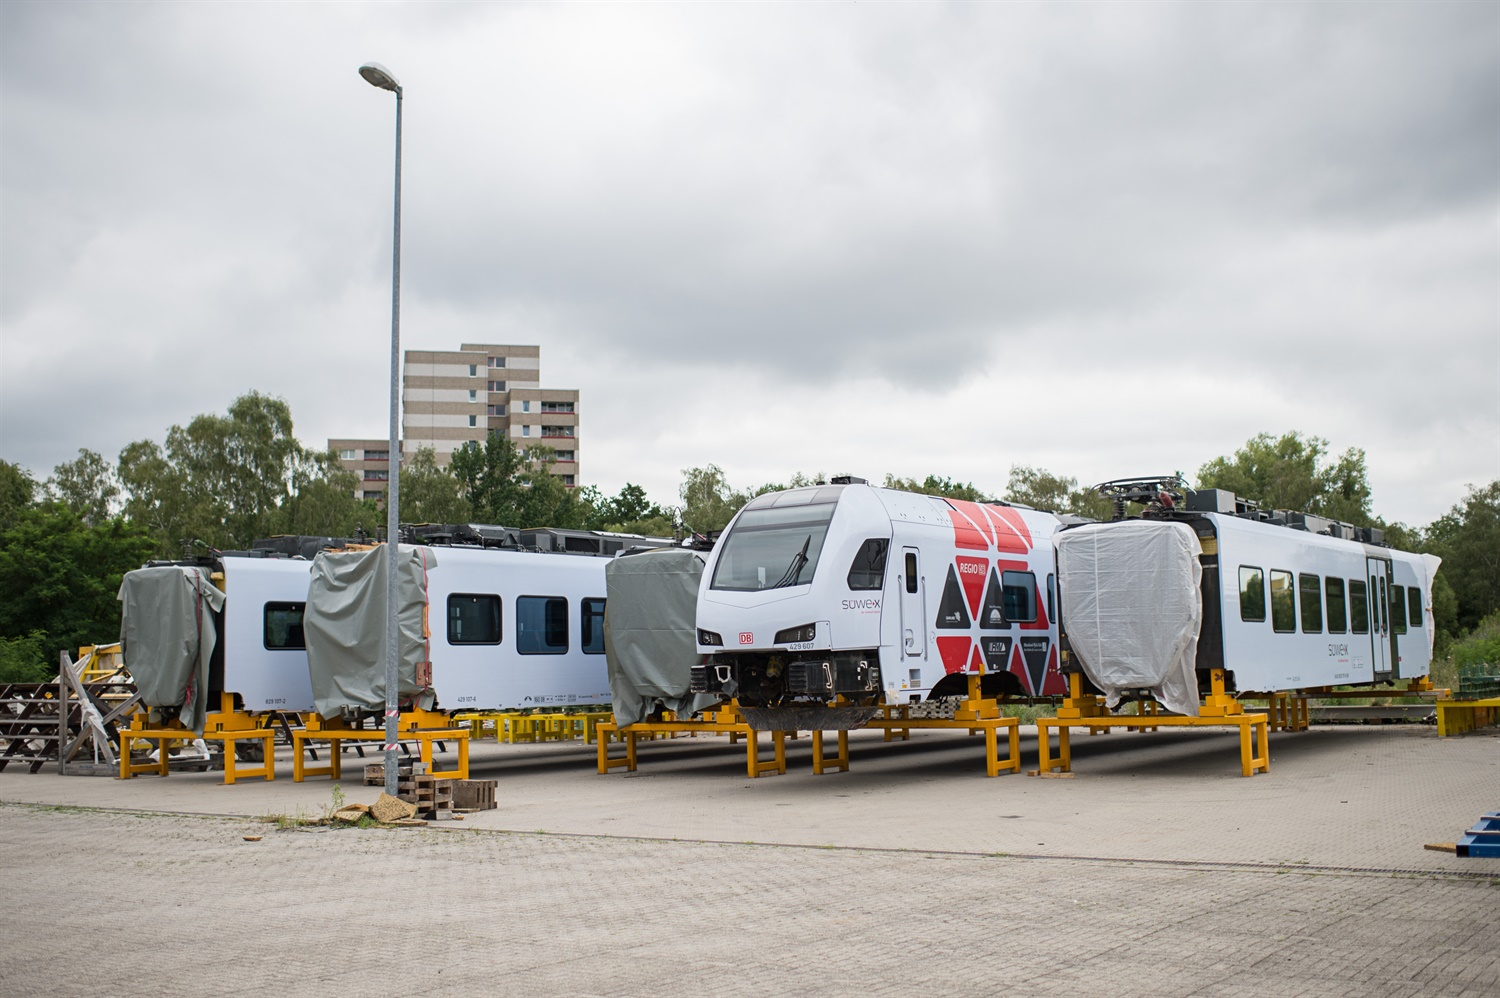 Greater Anglia's new trains rolled out for testing in Europe